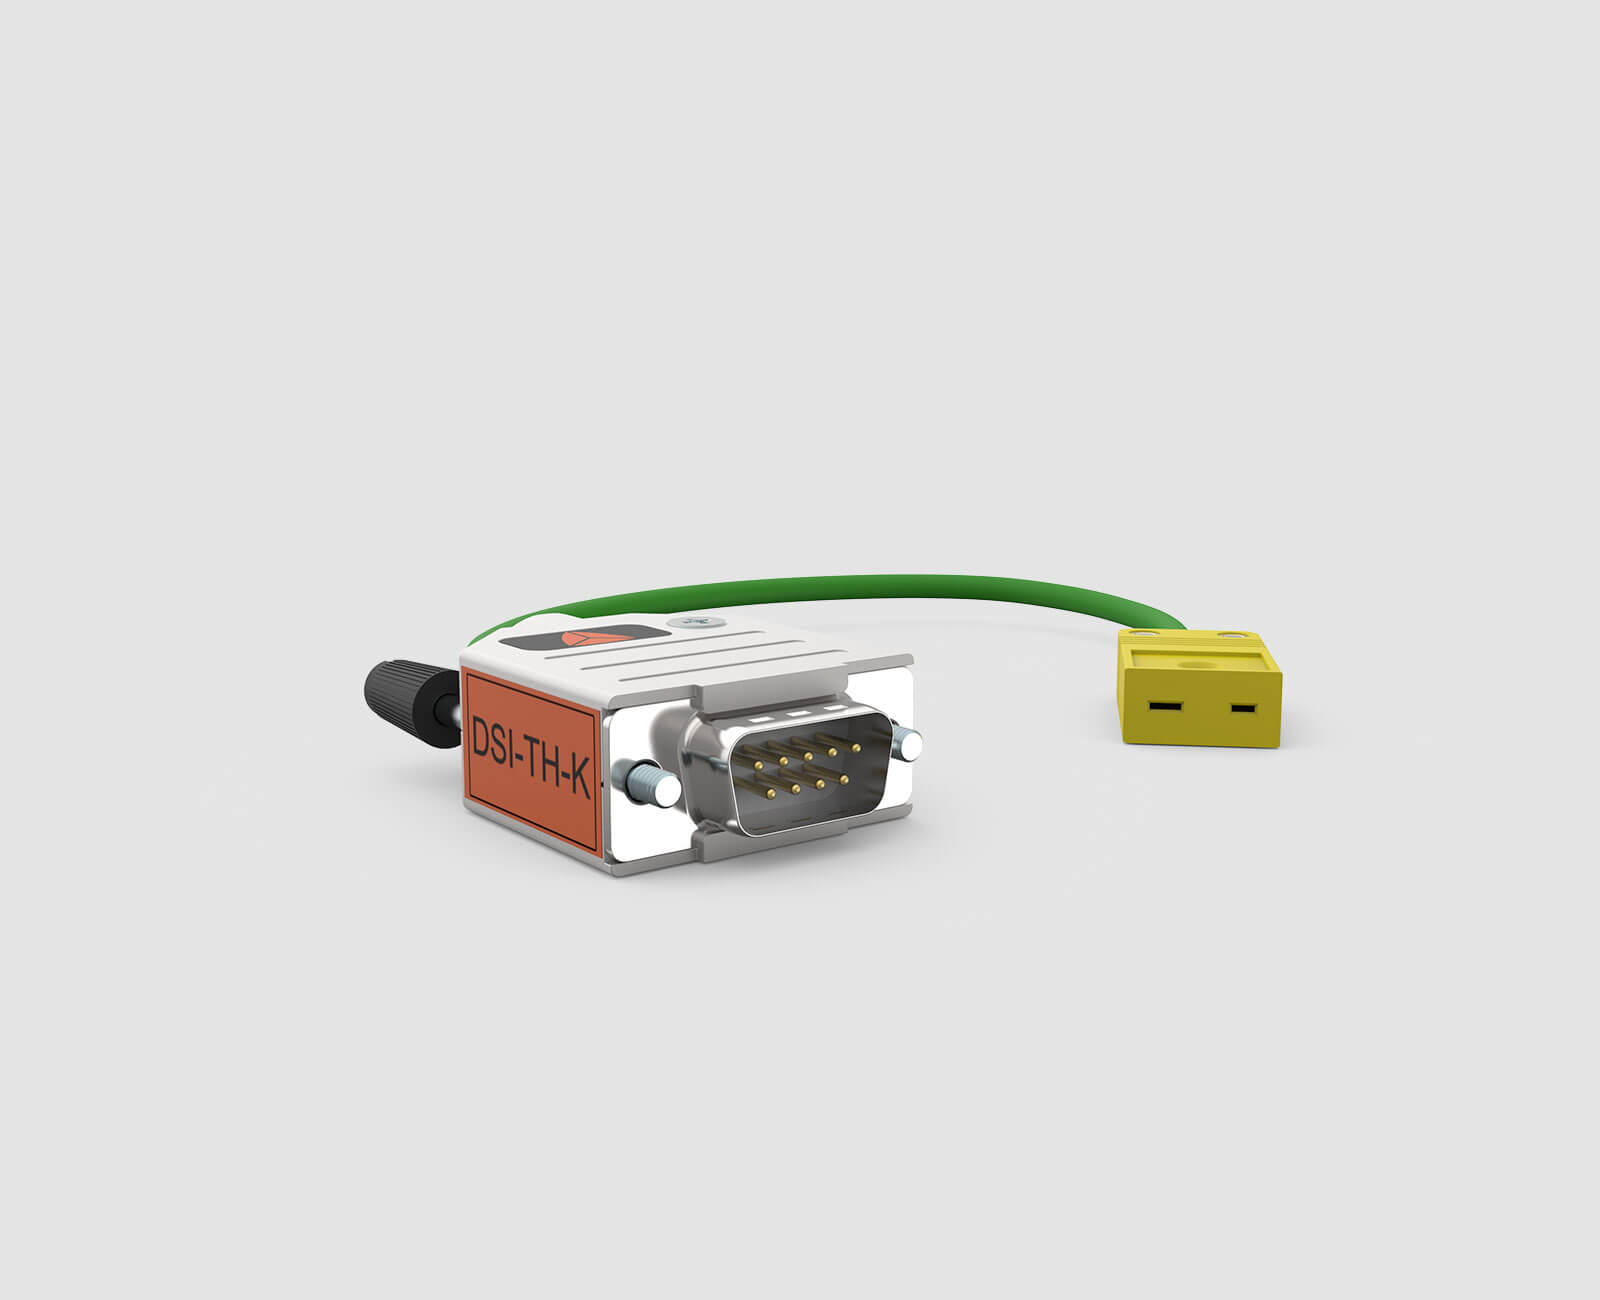 Dewesoft thermocouple TH-K adapter